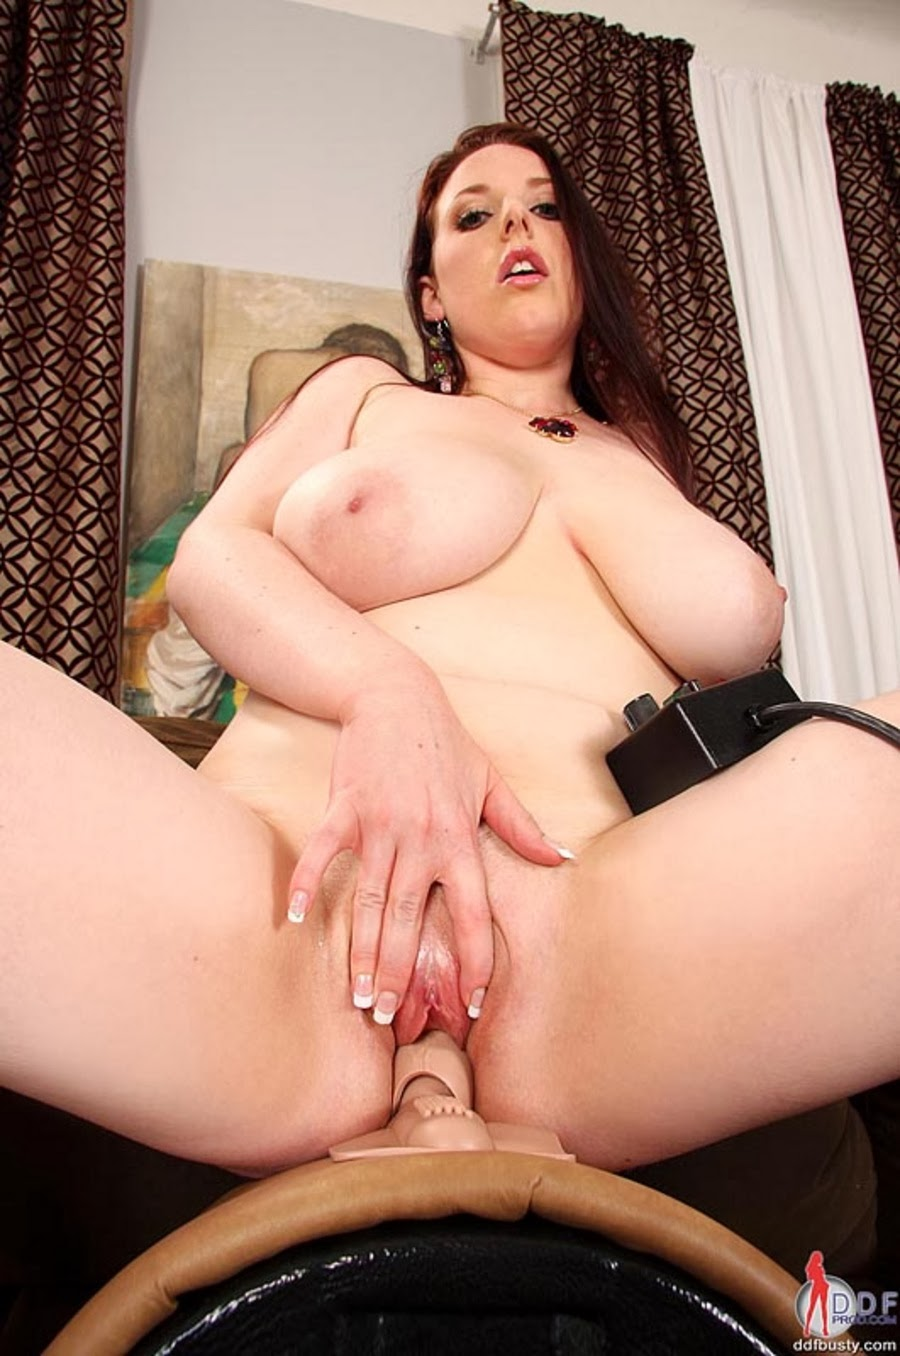 angela white milf big tits Hot